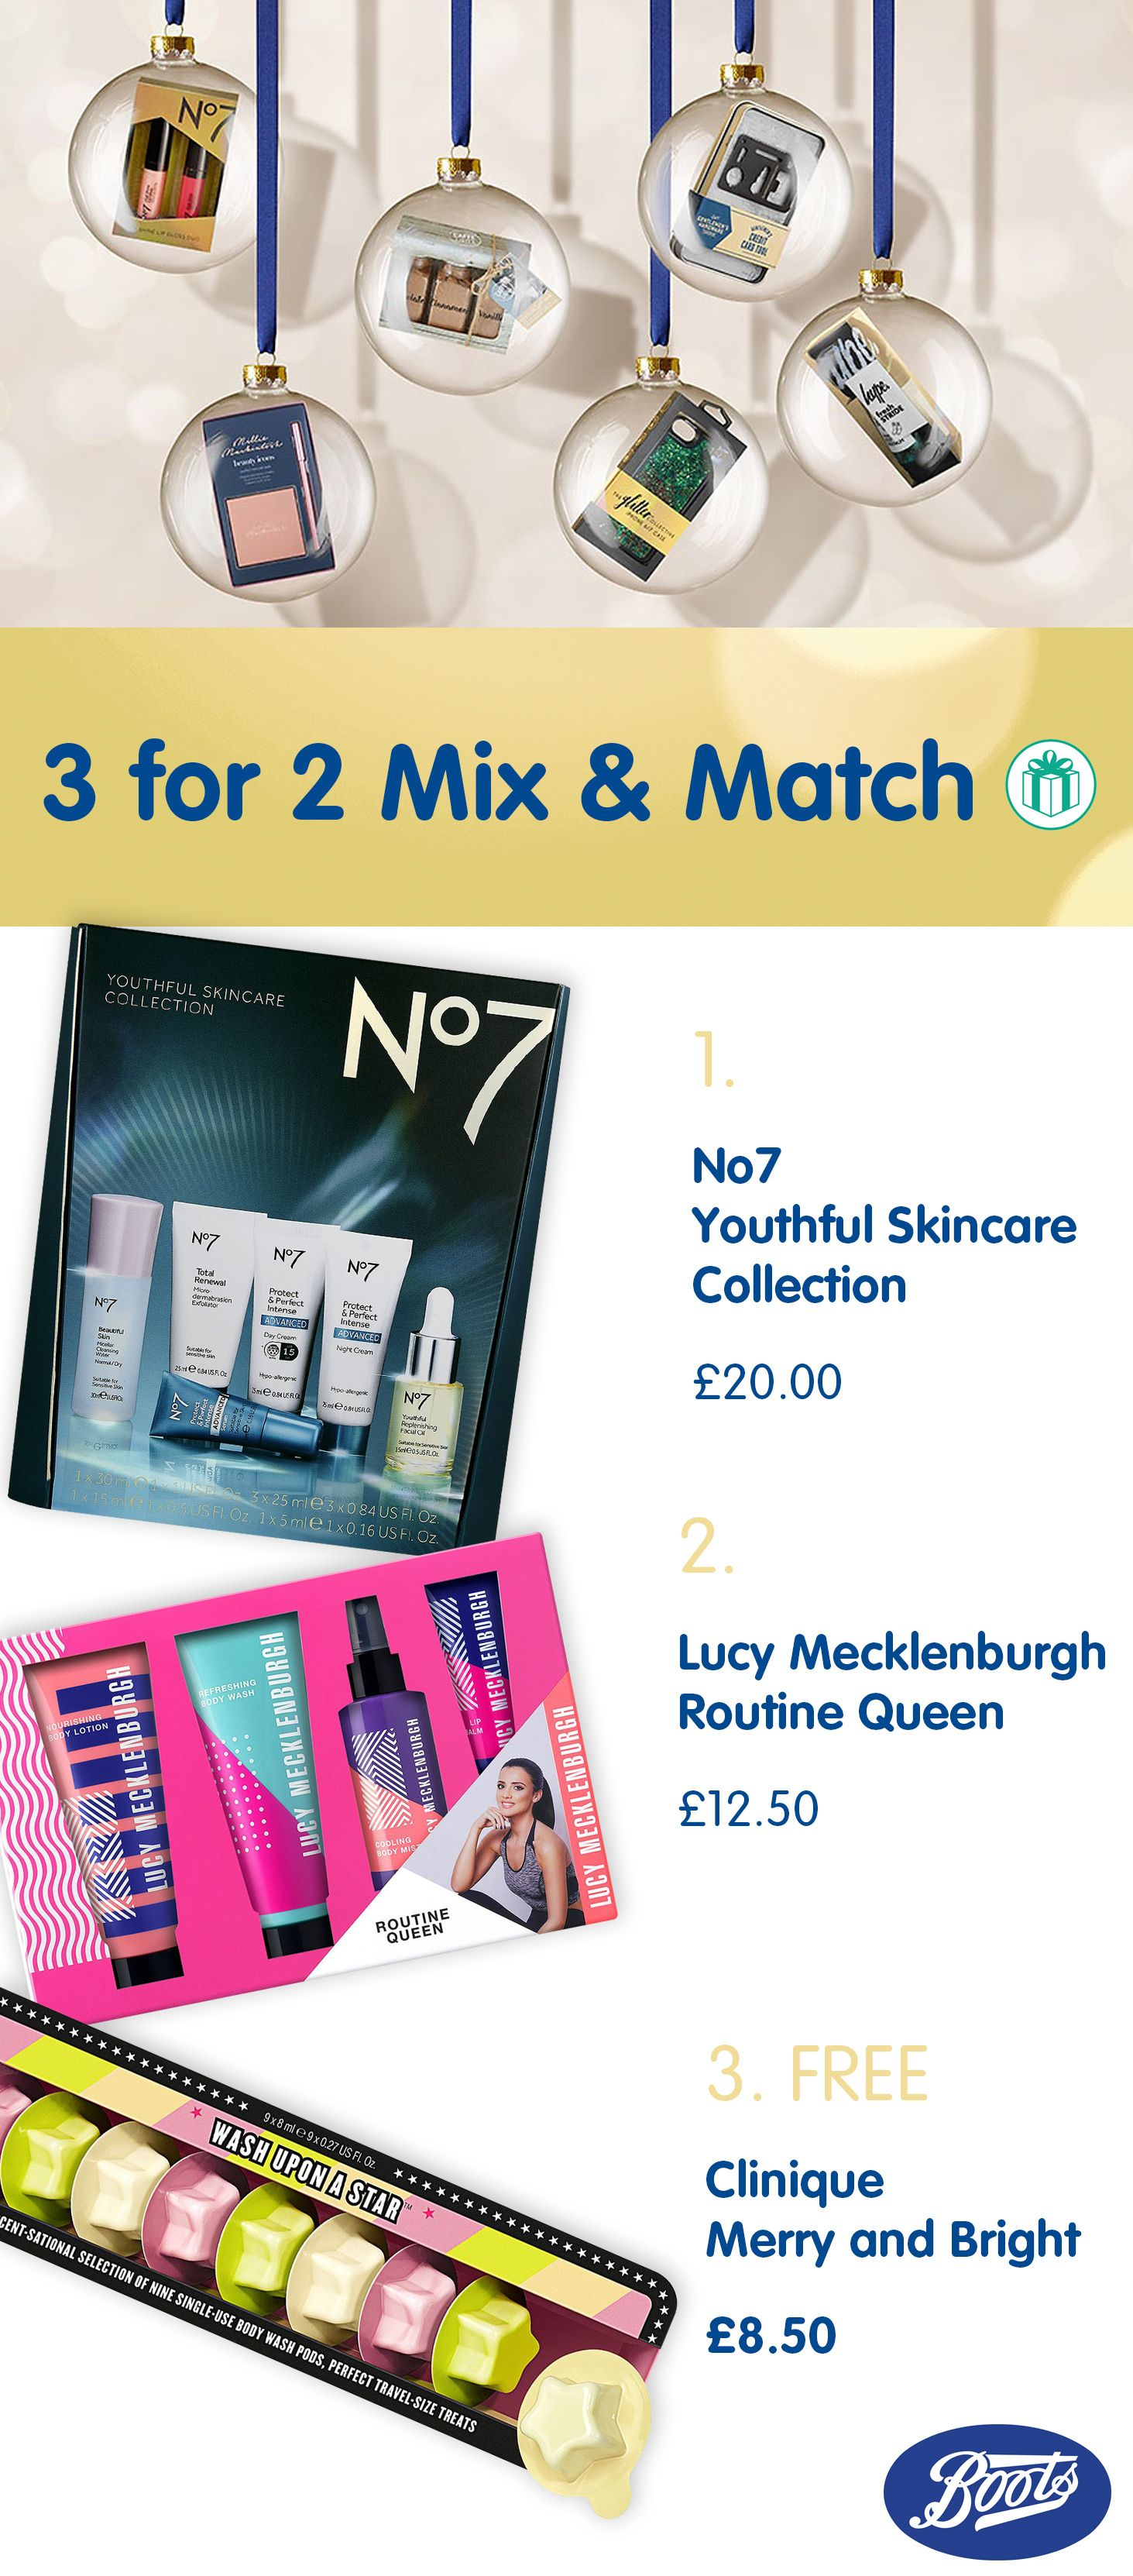 There are thousands of gifts to suit everyone in the 3 for 2 Mix ...